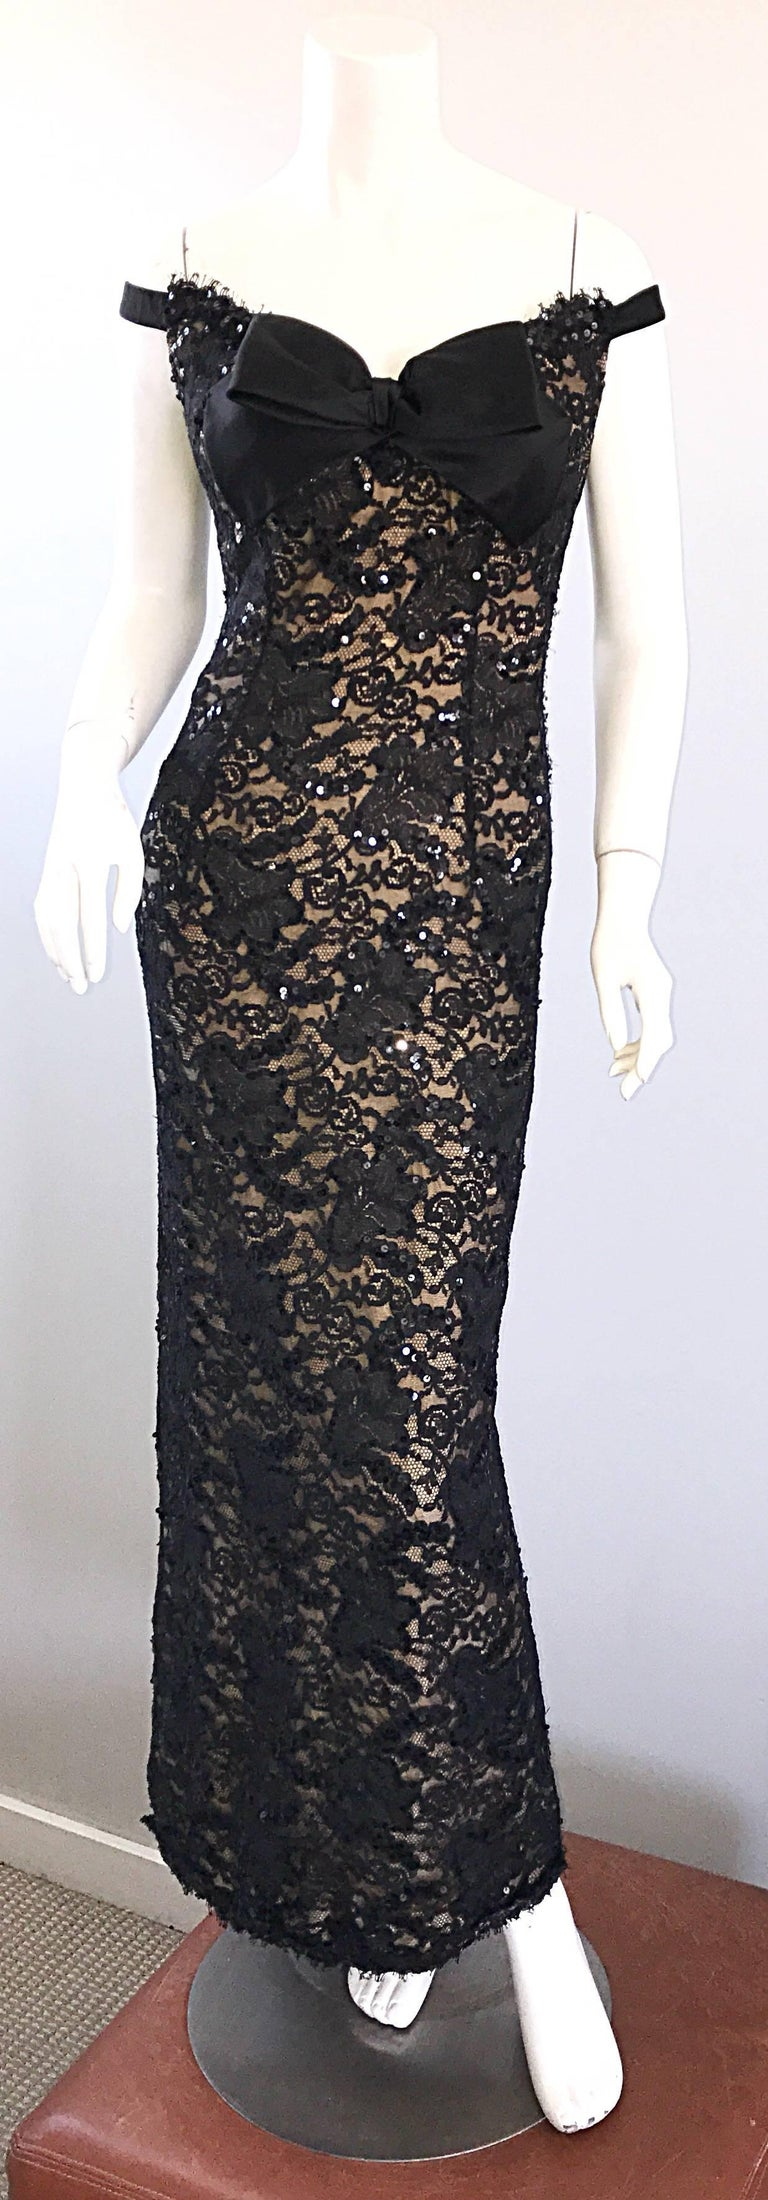 Gorgeous vintage 1990s BOB MACKIE black and nude lace and sequined evening dress! Features a flattering off-the-shoulder silhouette, and a slight train. Nude underlay peaks under the black lace. Thousands of hand-sewn sequins throughout. Black silk